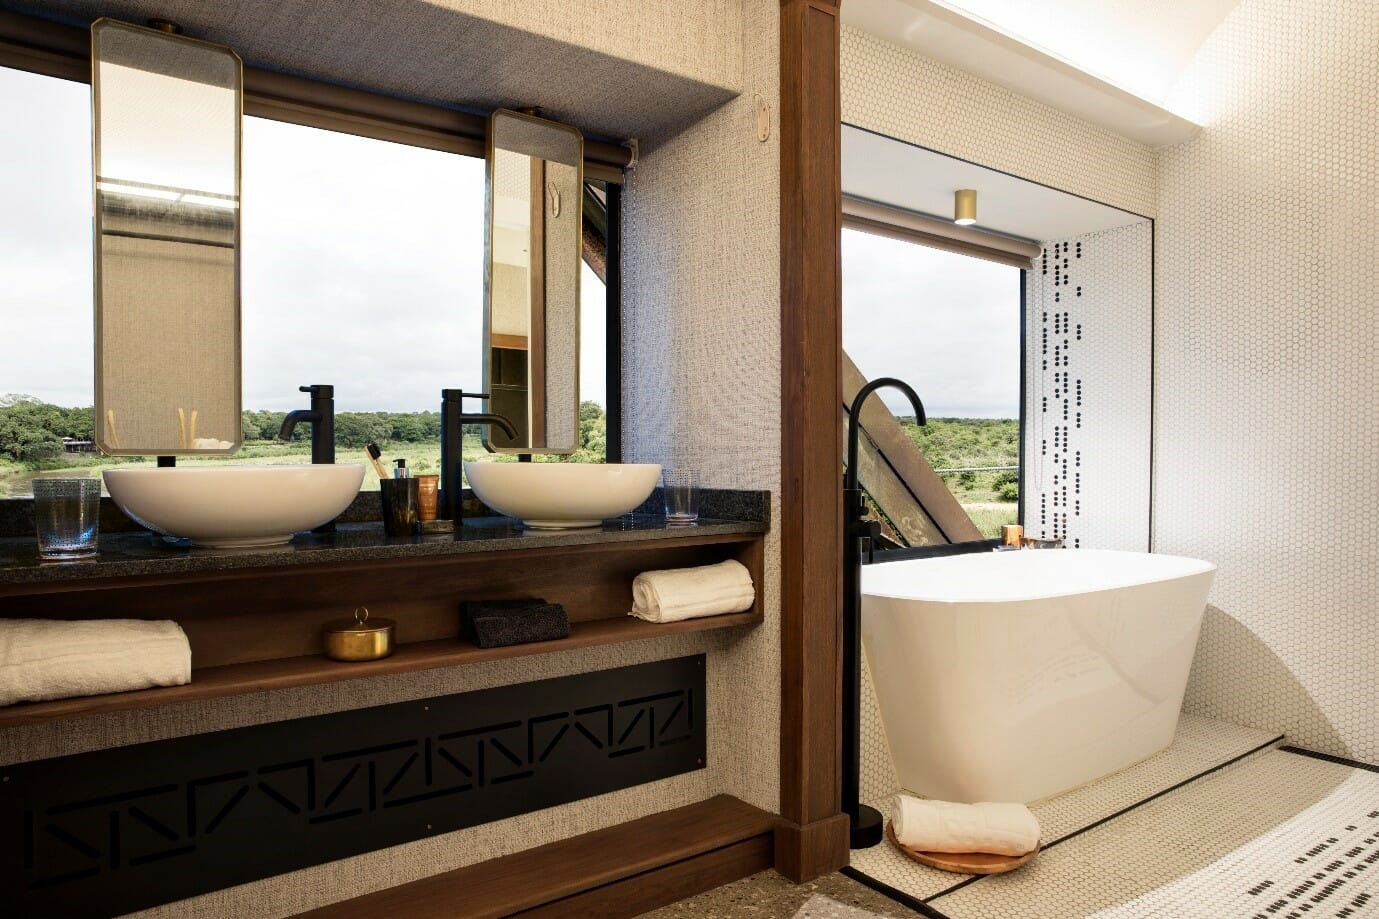 Each room has a full bathroom, with double vanities, a freestanding bath, and a shower. Photo courtesy of Kruger Shalati